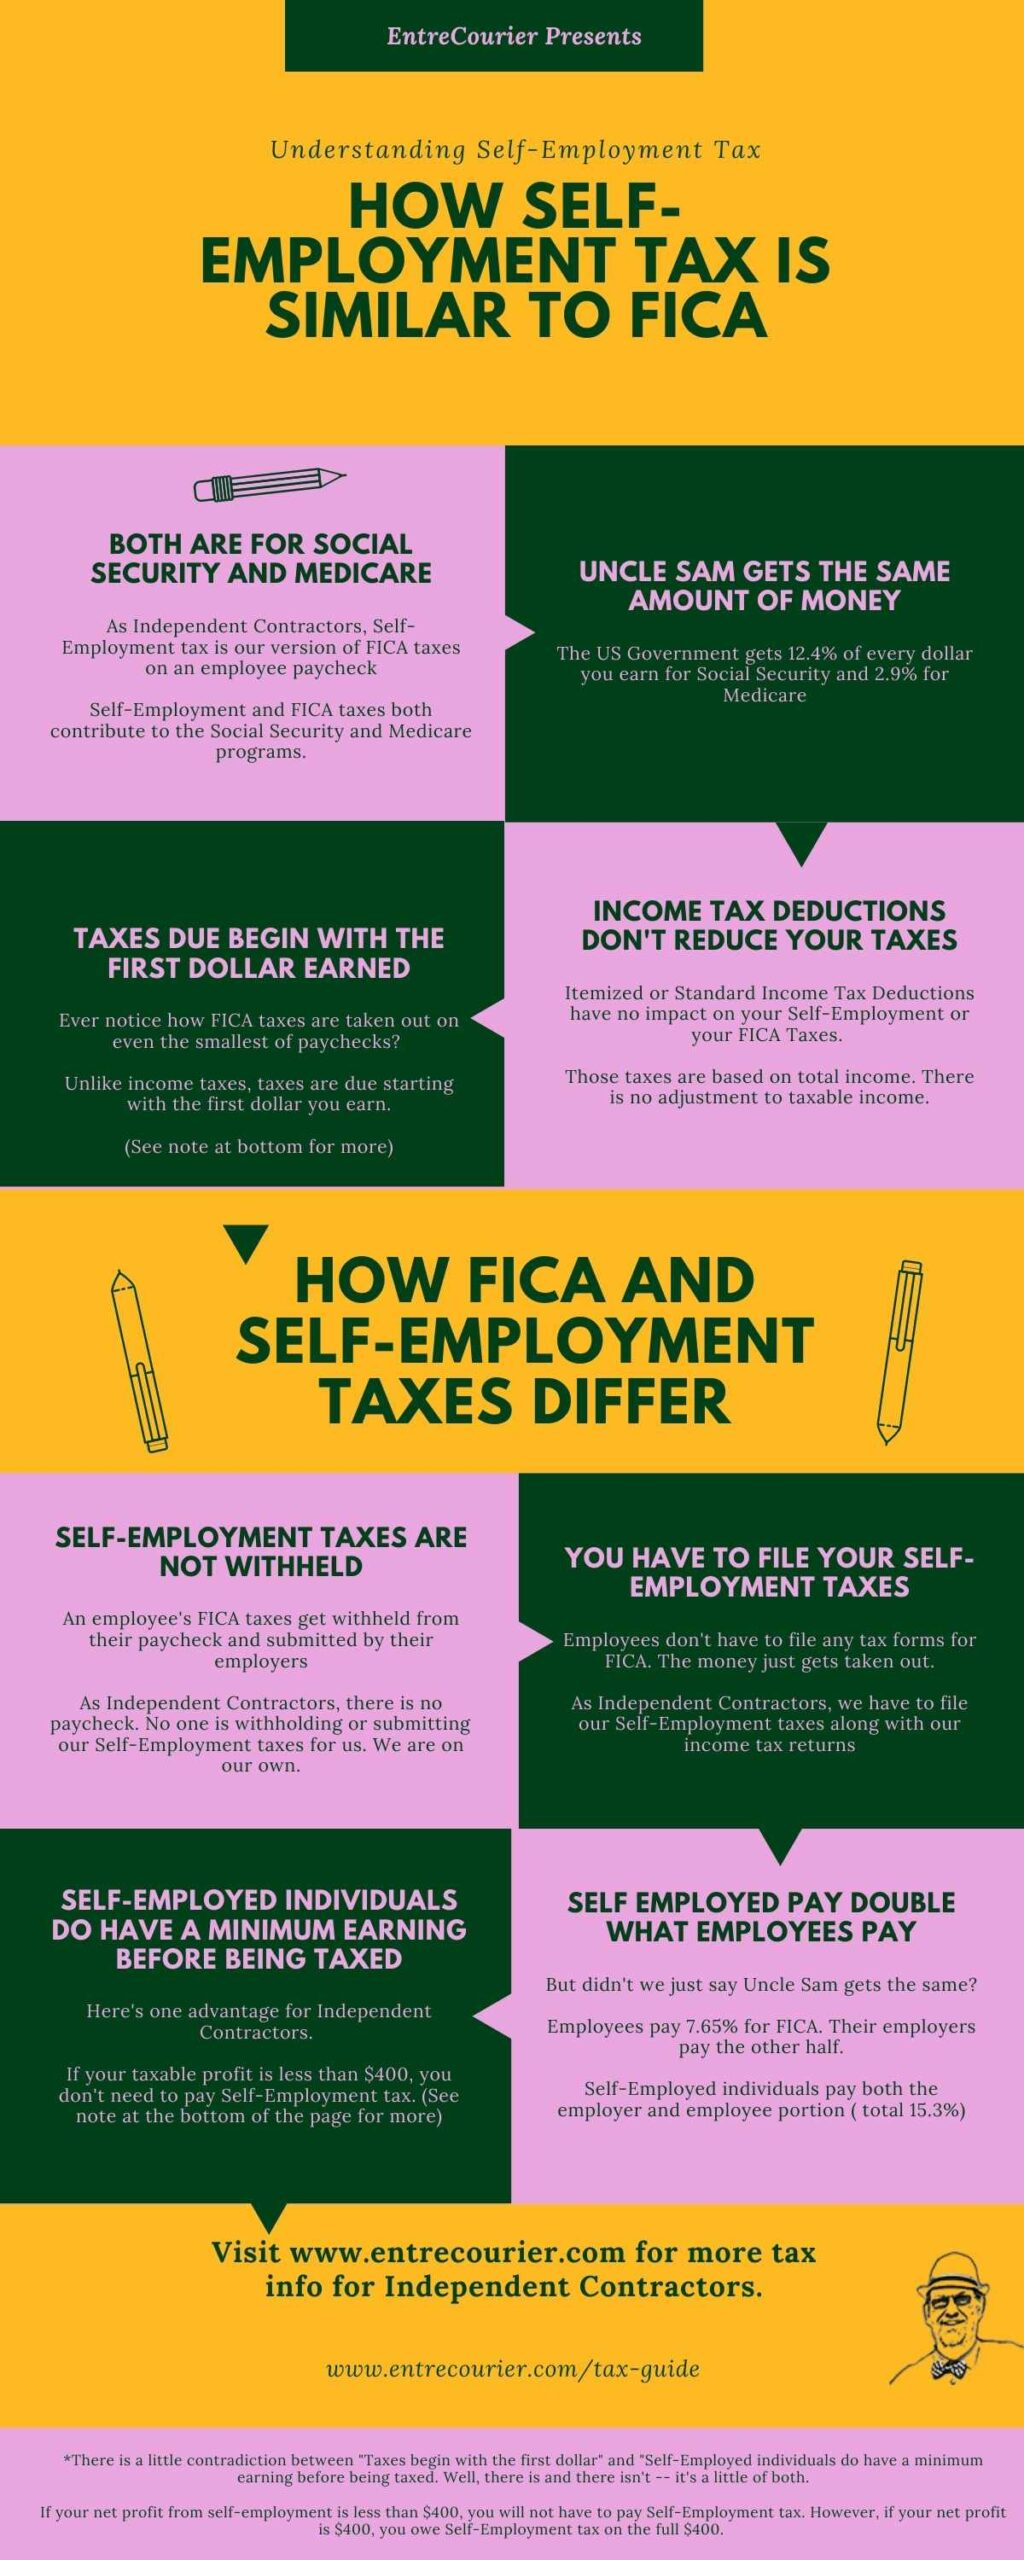 Infographic outlining similarities and differences between FICA and Self-Employment taxes